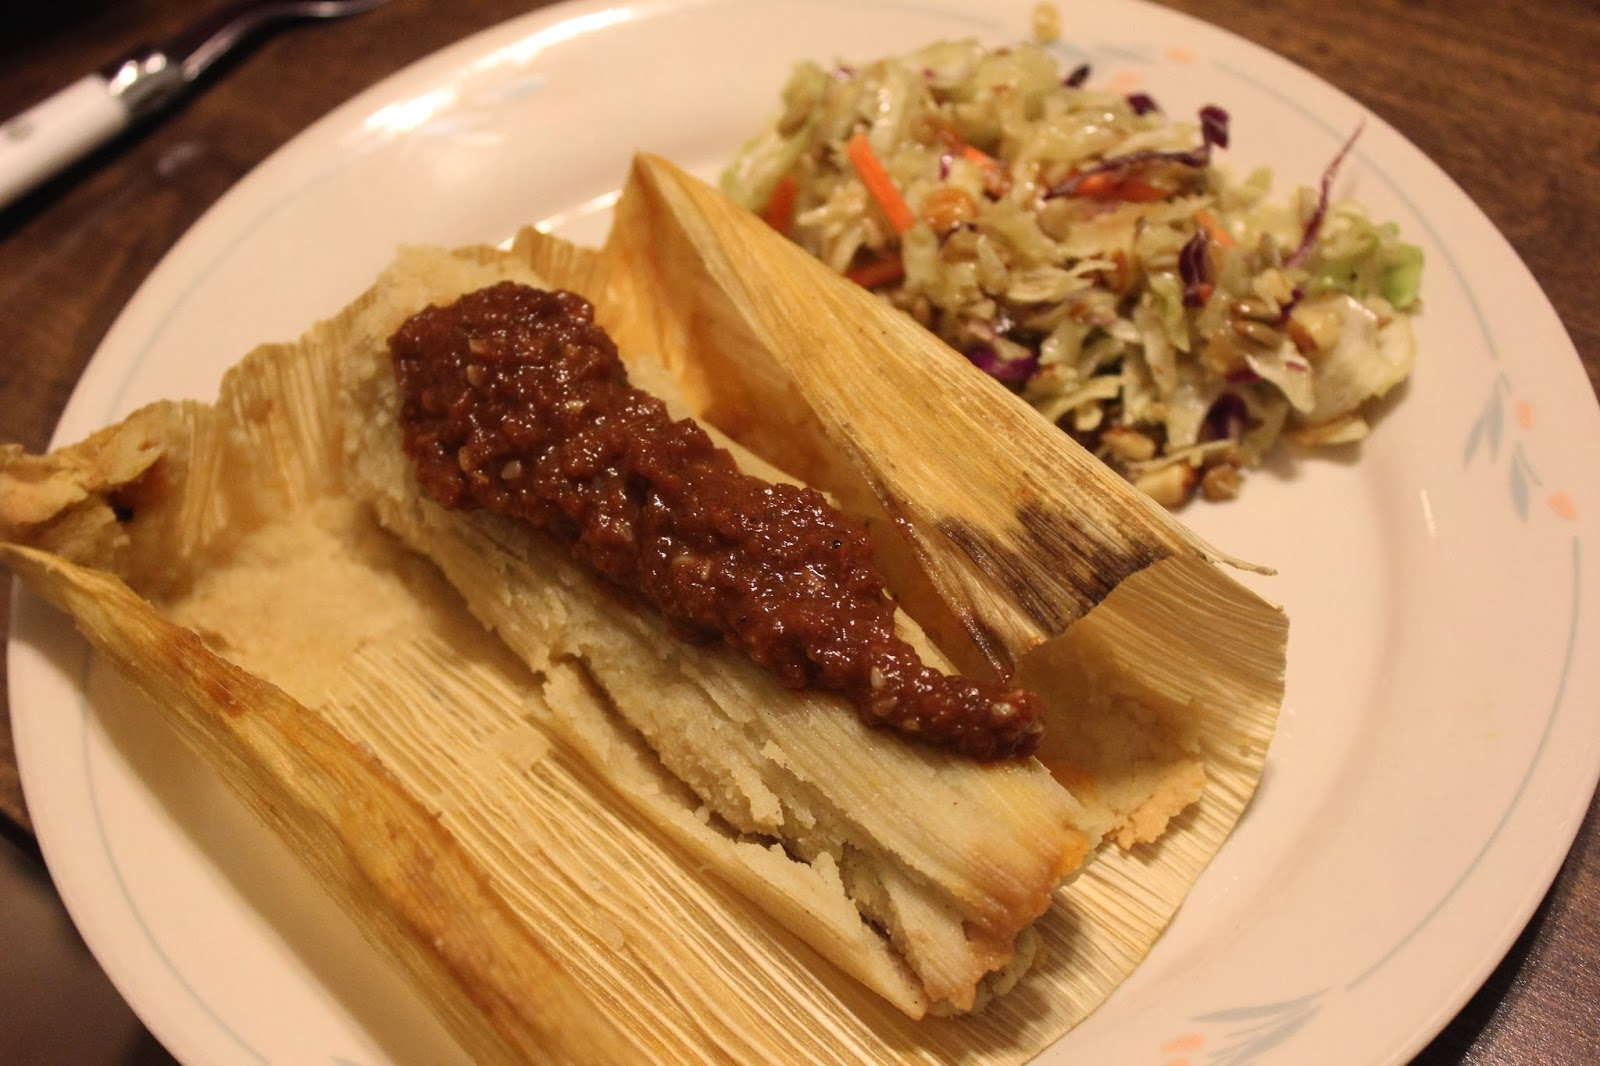 homemade mexican tamales up eating homemade tamales homemade tamales ...